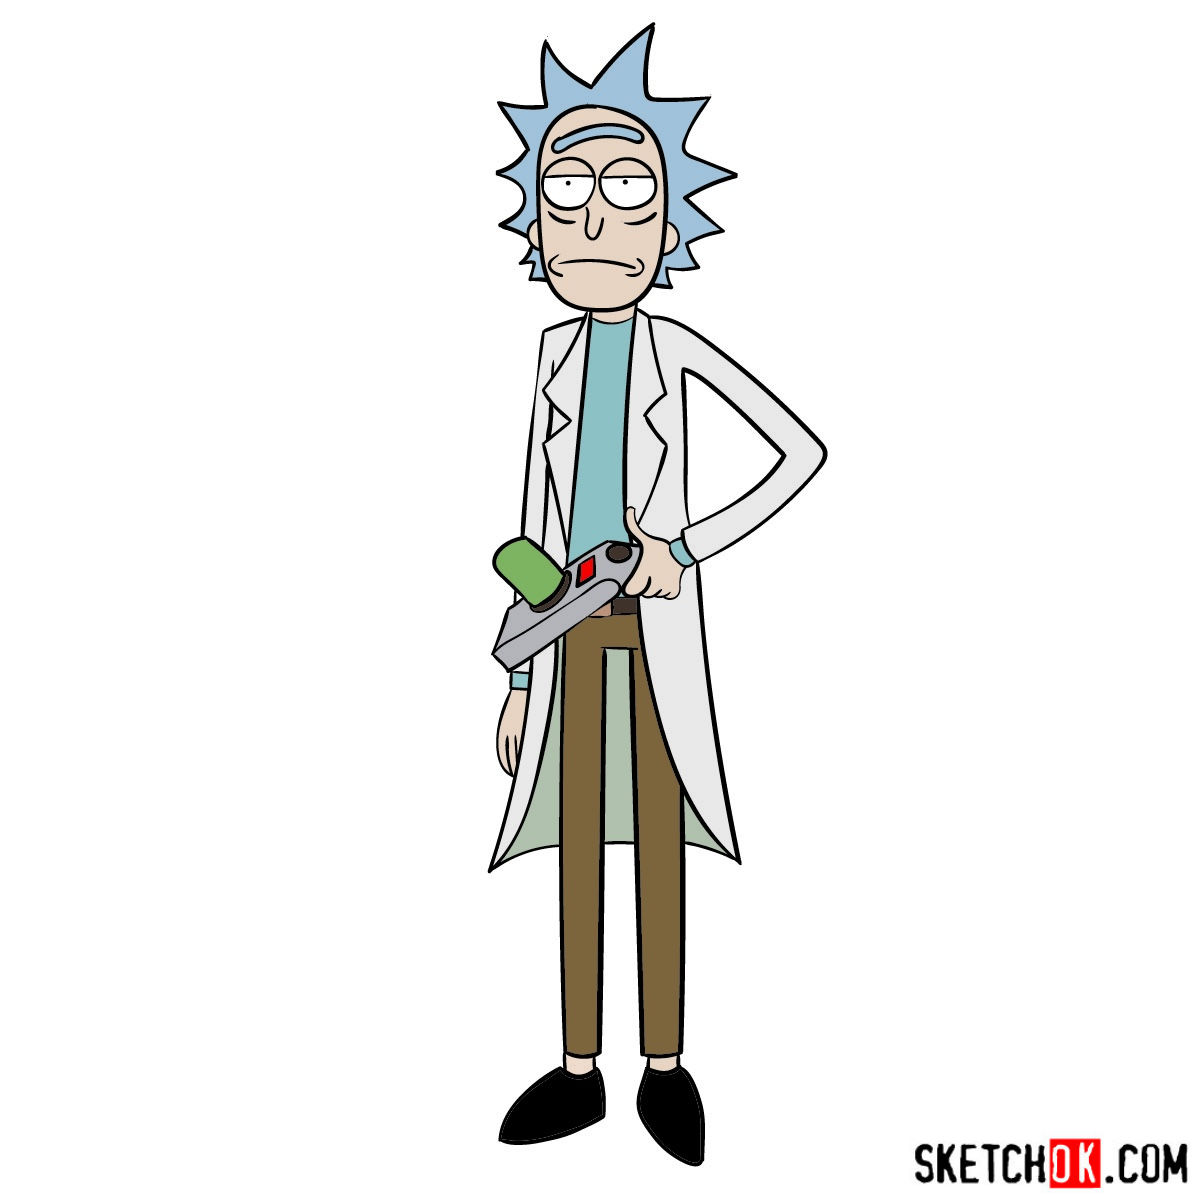 How to draw Rick Sanchez